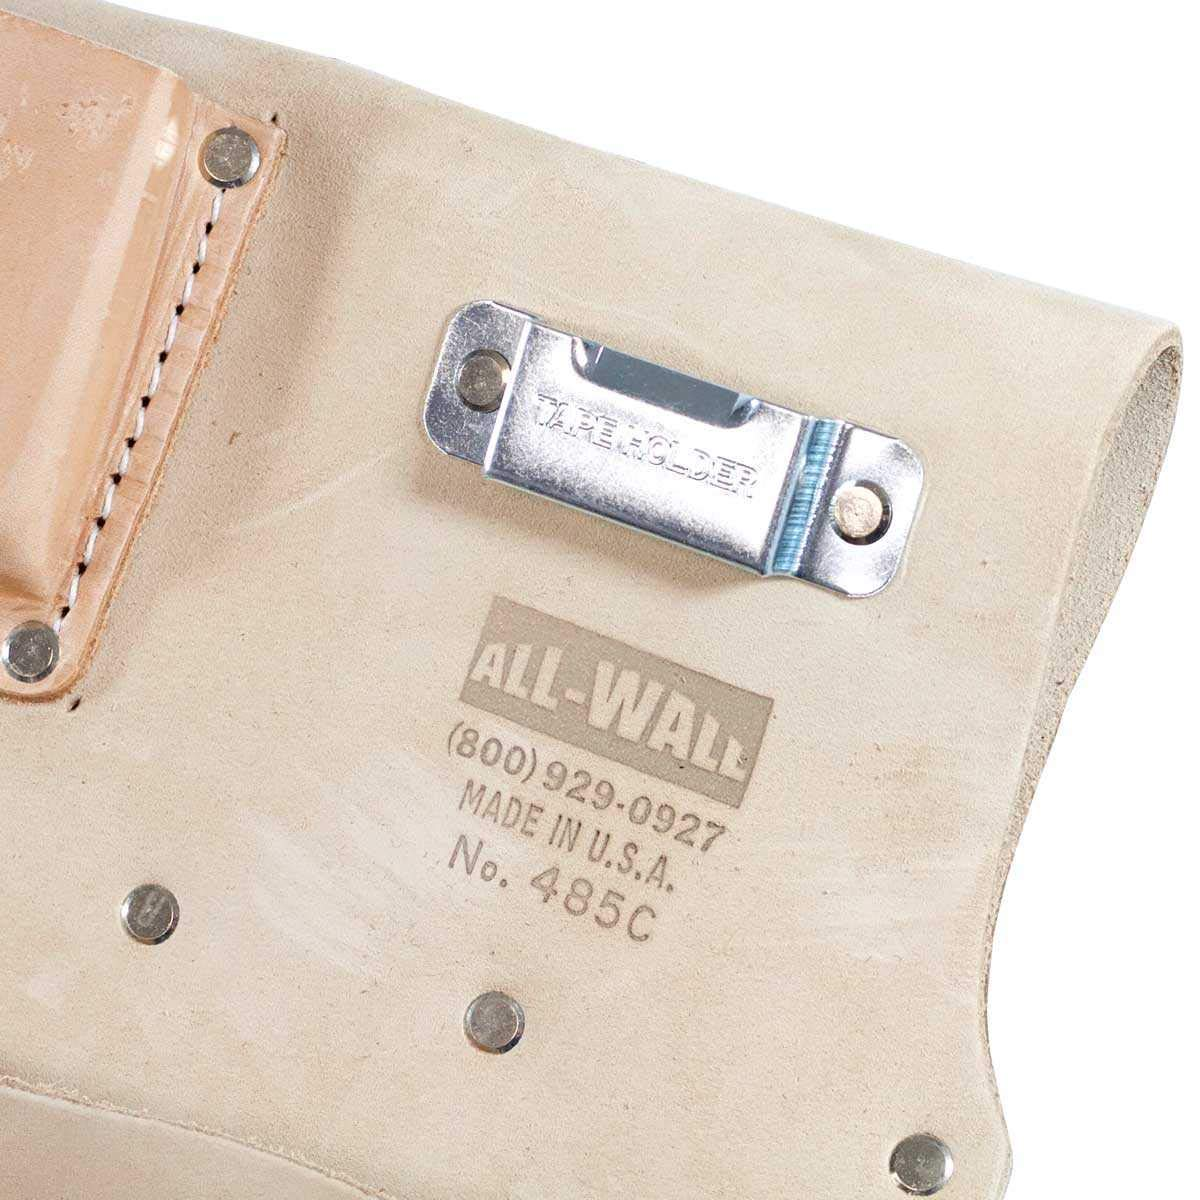 8-Pocket Drywall Hangers Pouch with Tape Clip